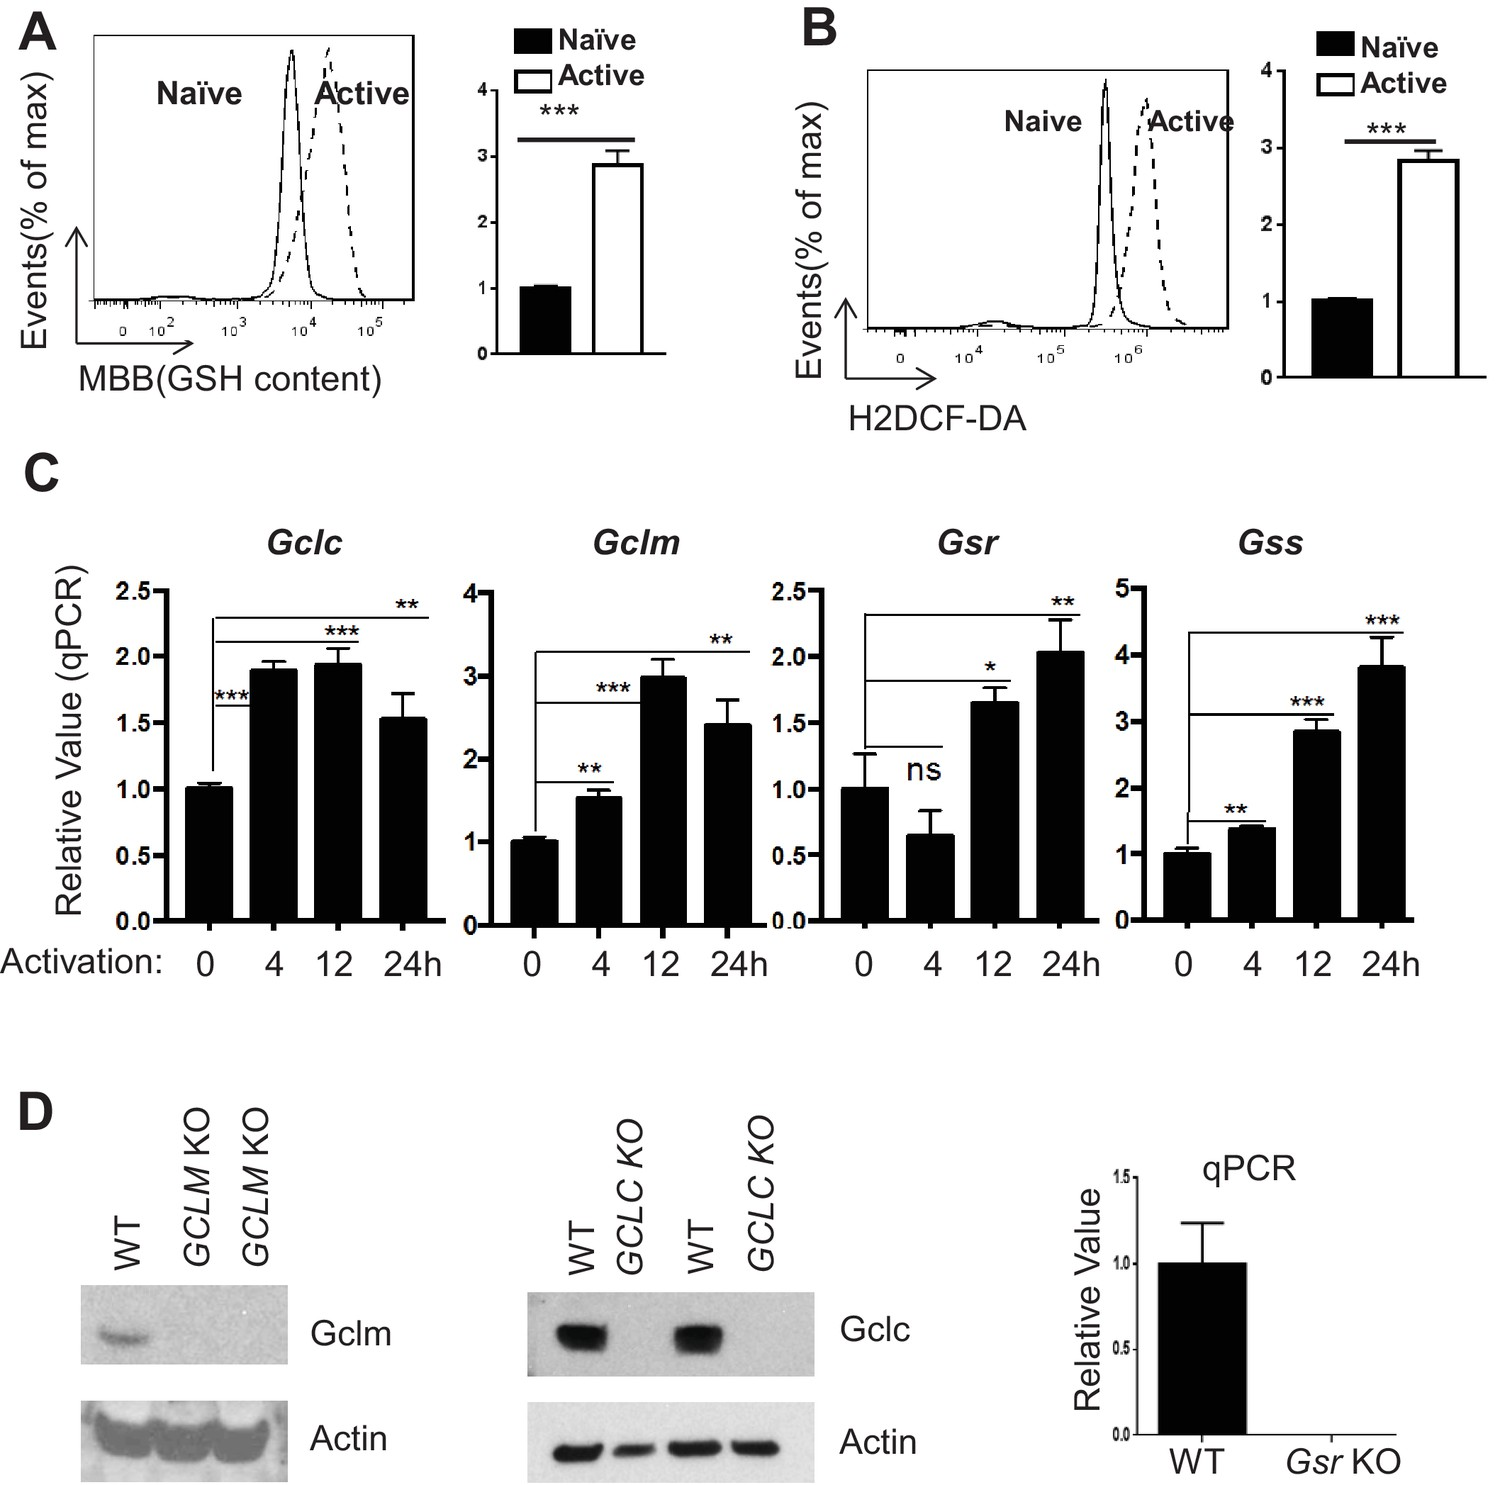 Glutathione De Novo Synthesis But Not Recycling Process Coordinates Fm Transmitter Block Diagram Eee Community Tcr Stimulation Drives Gsh And Ros Production In T Cells